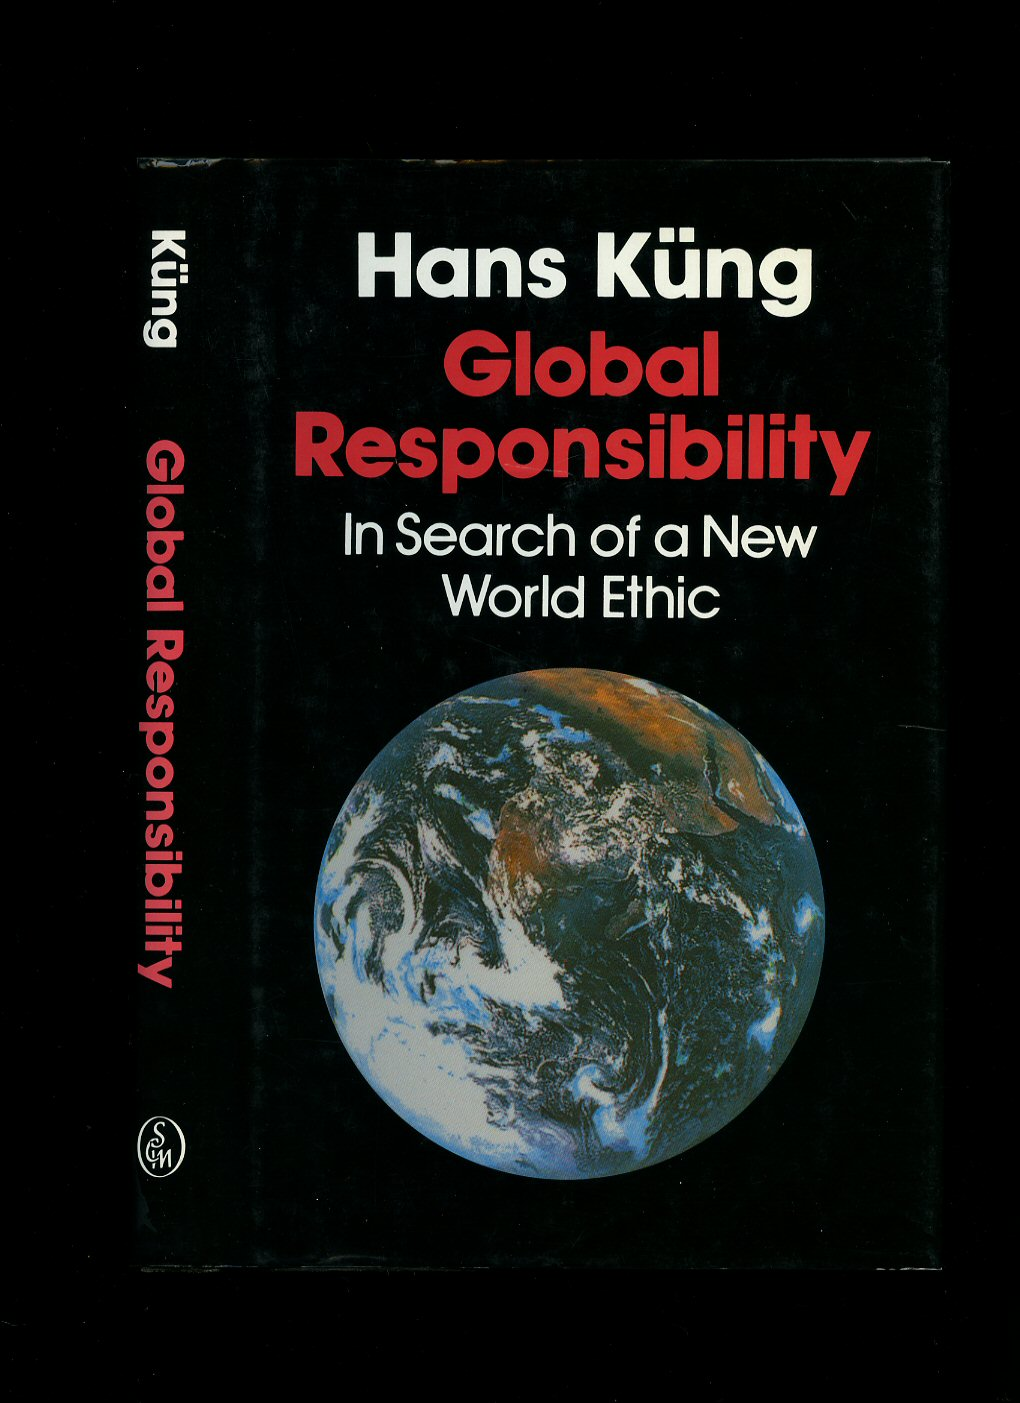 KÜNG, HANS - Global Responsibility; In Search of a New World Ethic